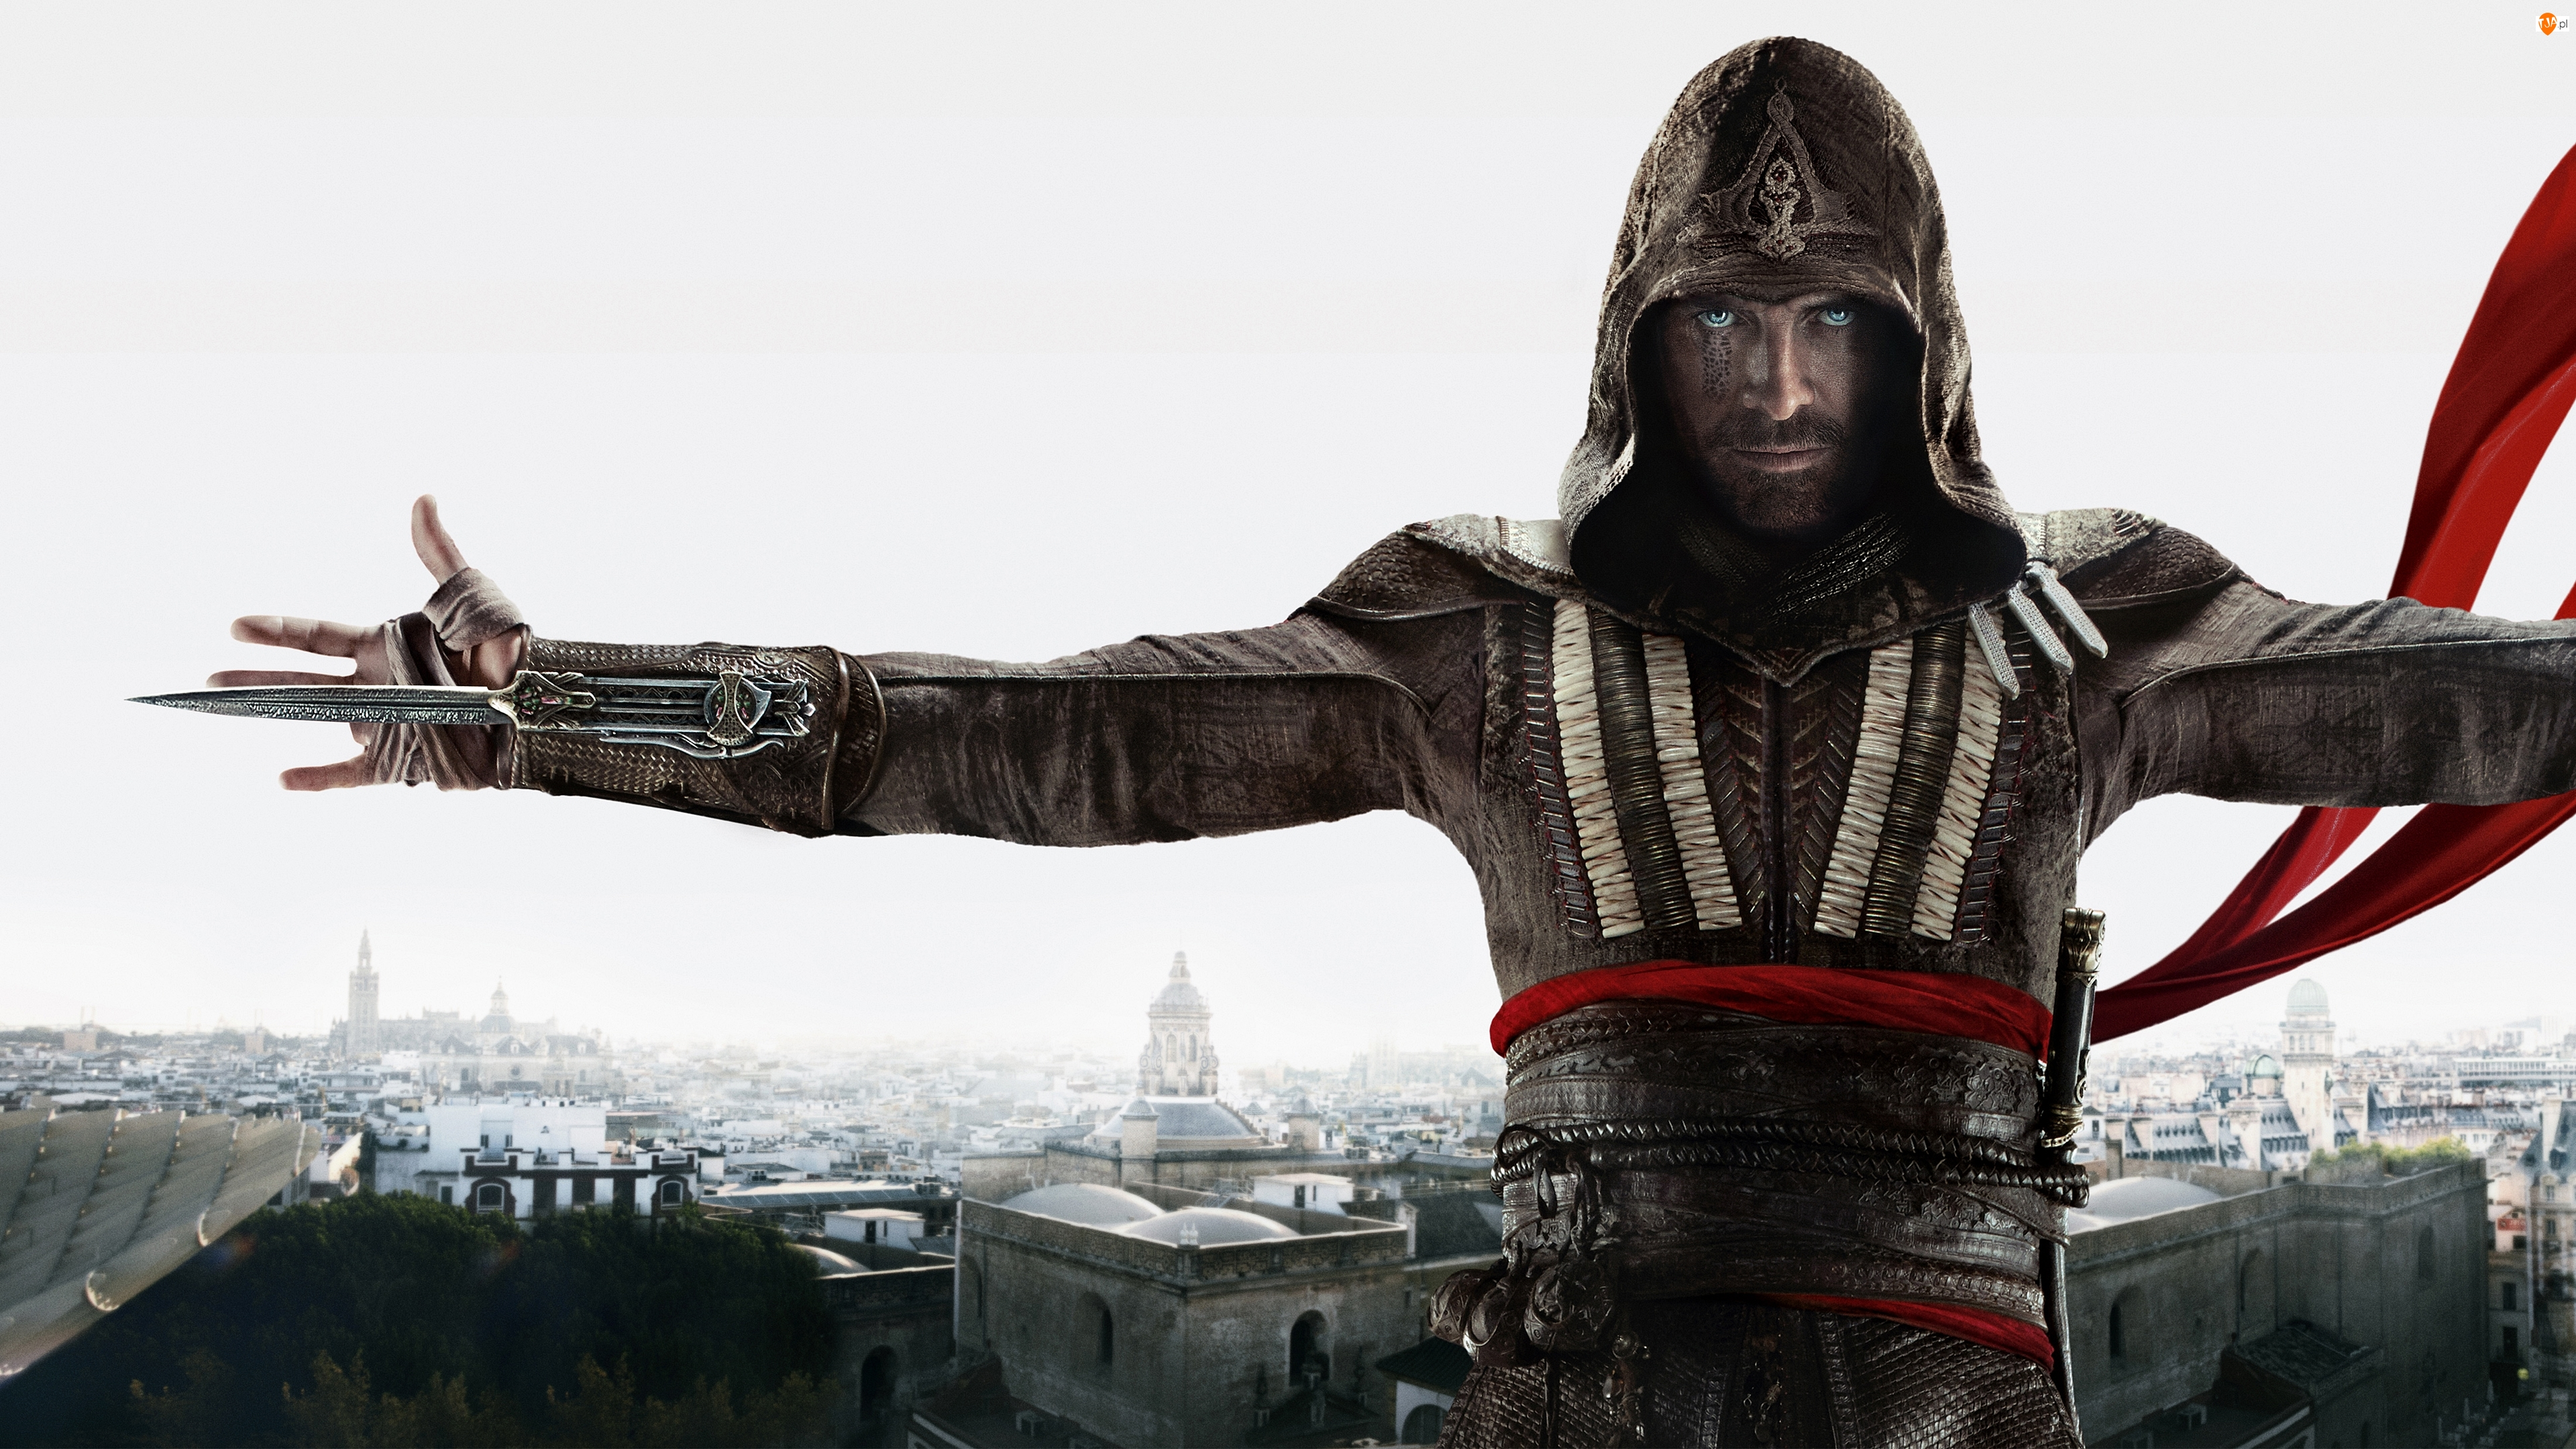 Film, Aguilar, Assassin's Creed, Michael Fassbender